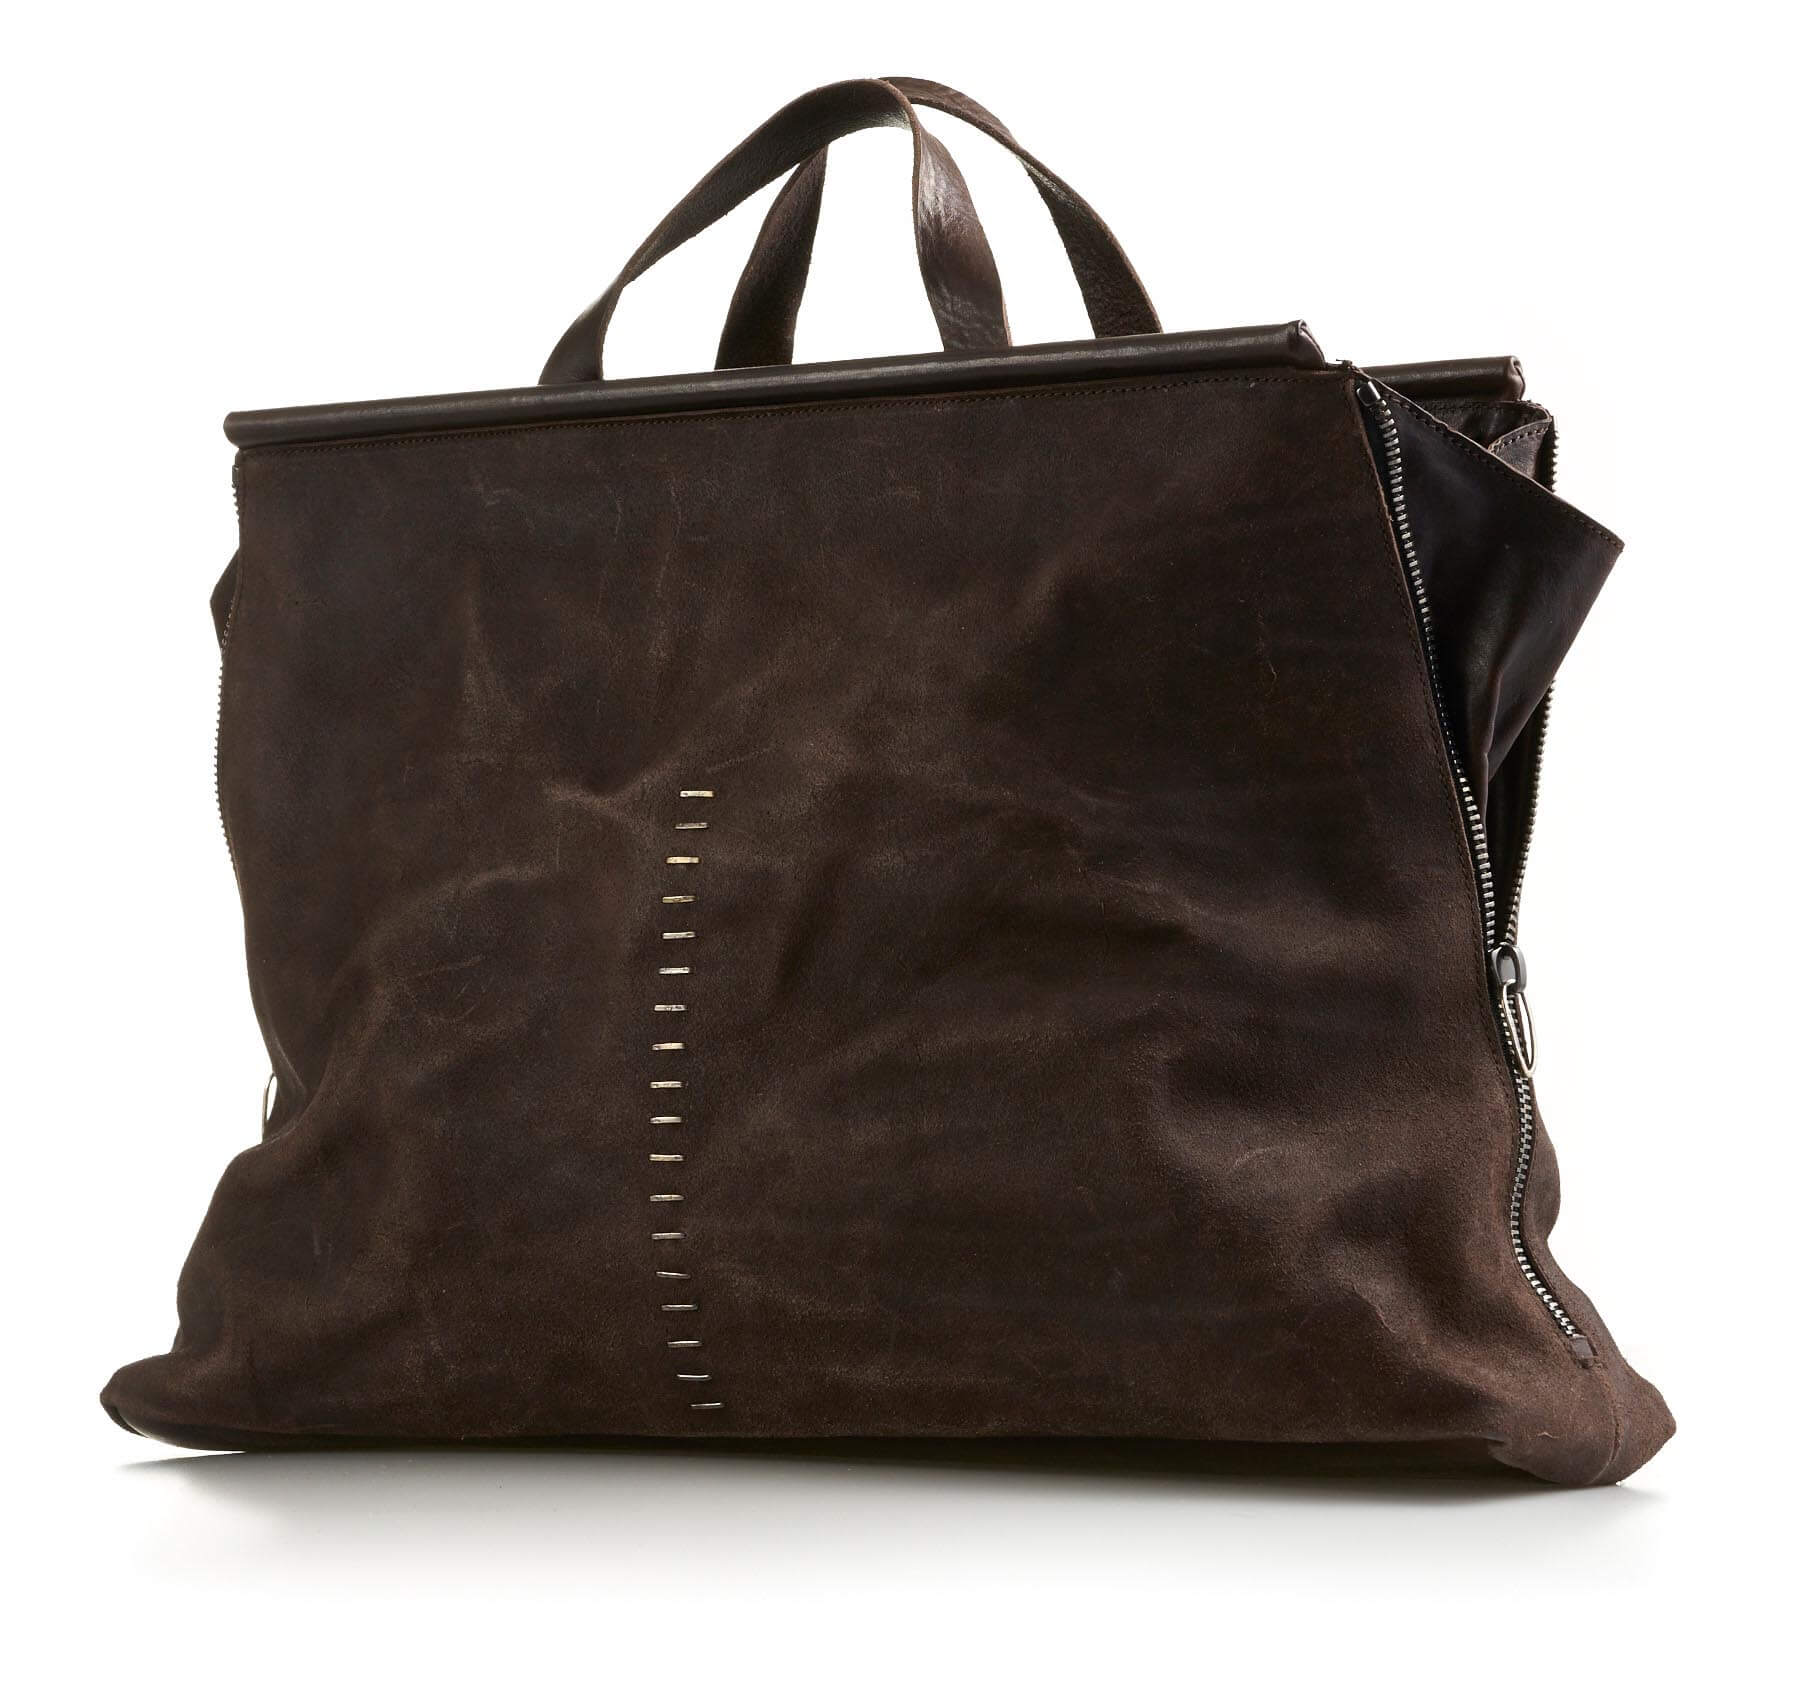 daniele basta leather and silver bags - febe grap front